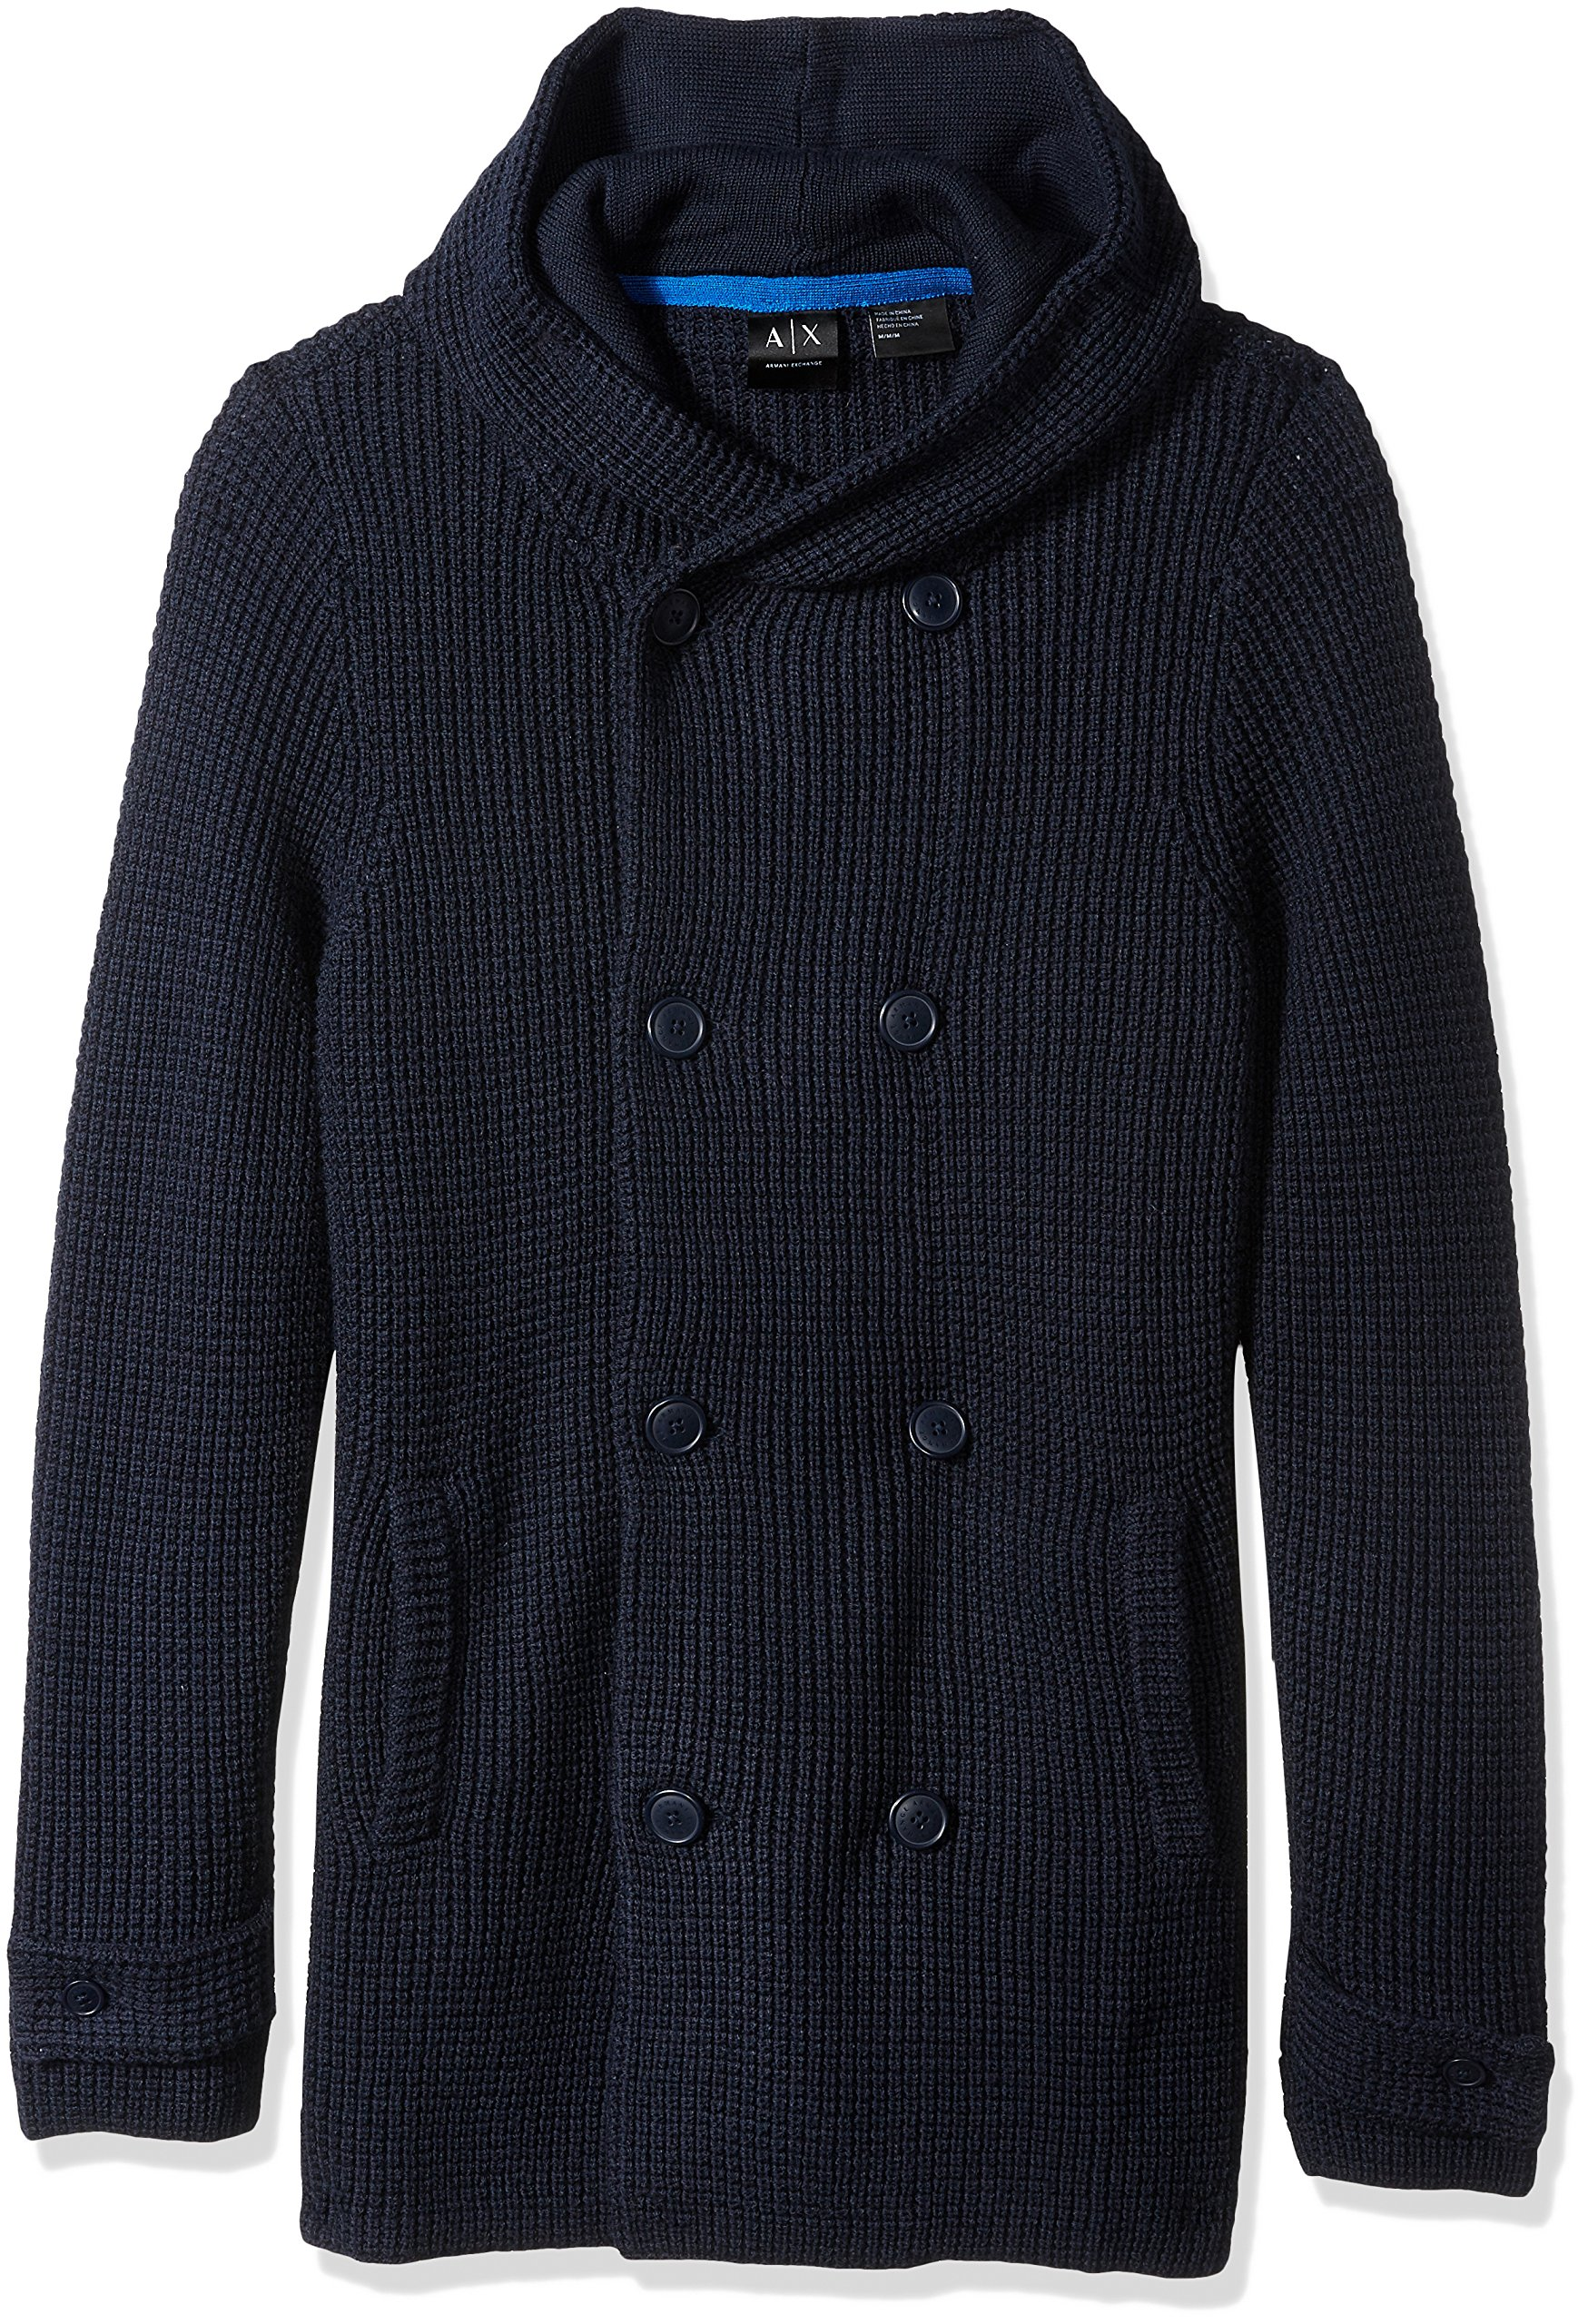 A|X Armani Exchange Men's Large Knit Peacoat Sweater, Sky Captain, Small